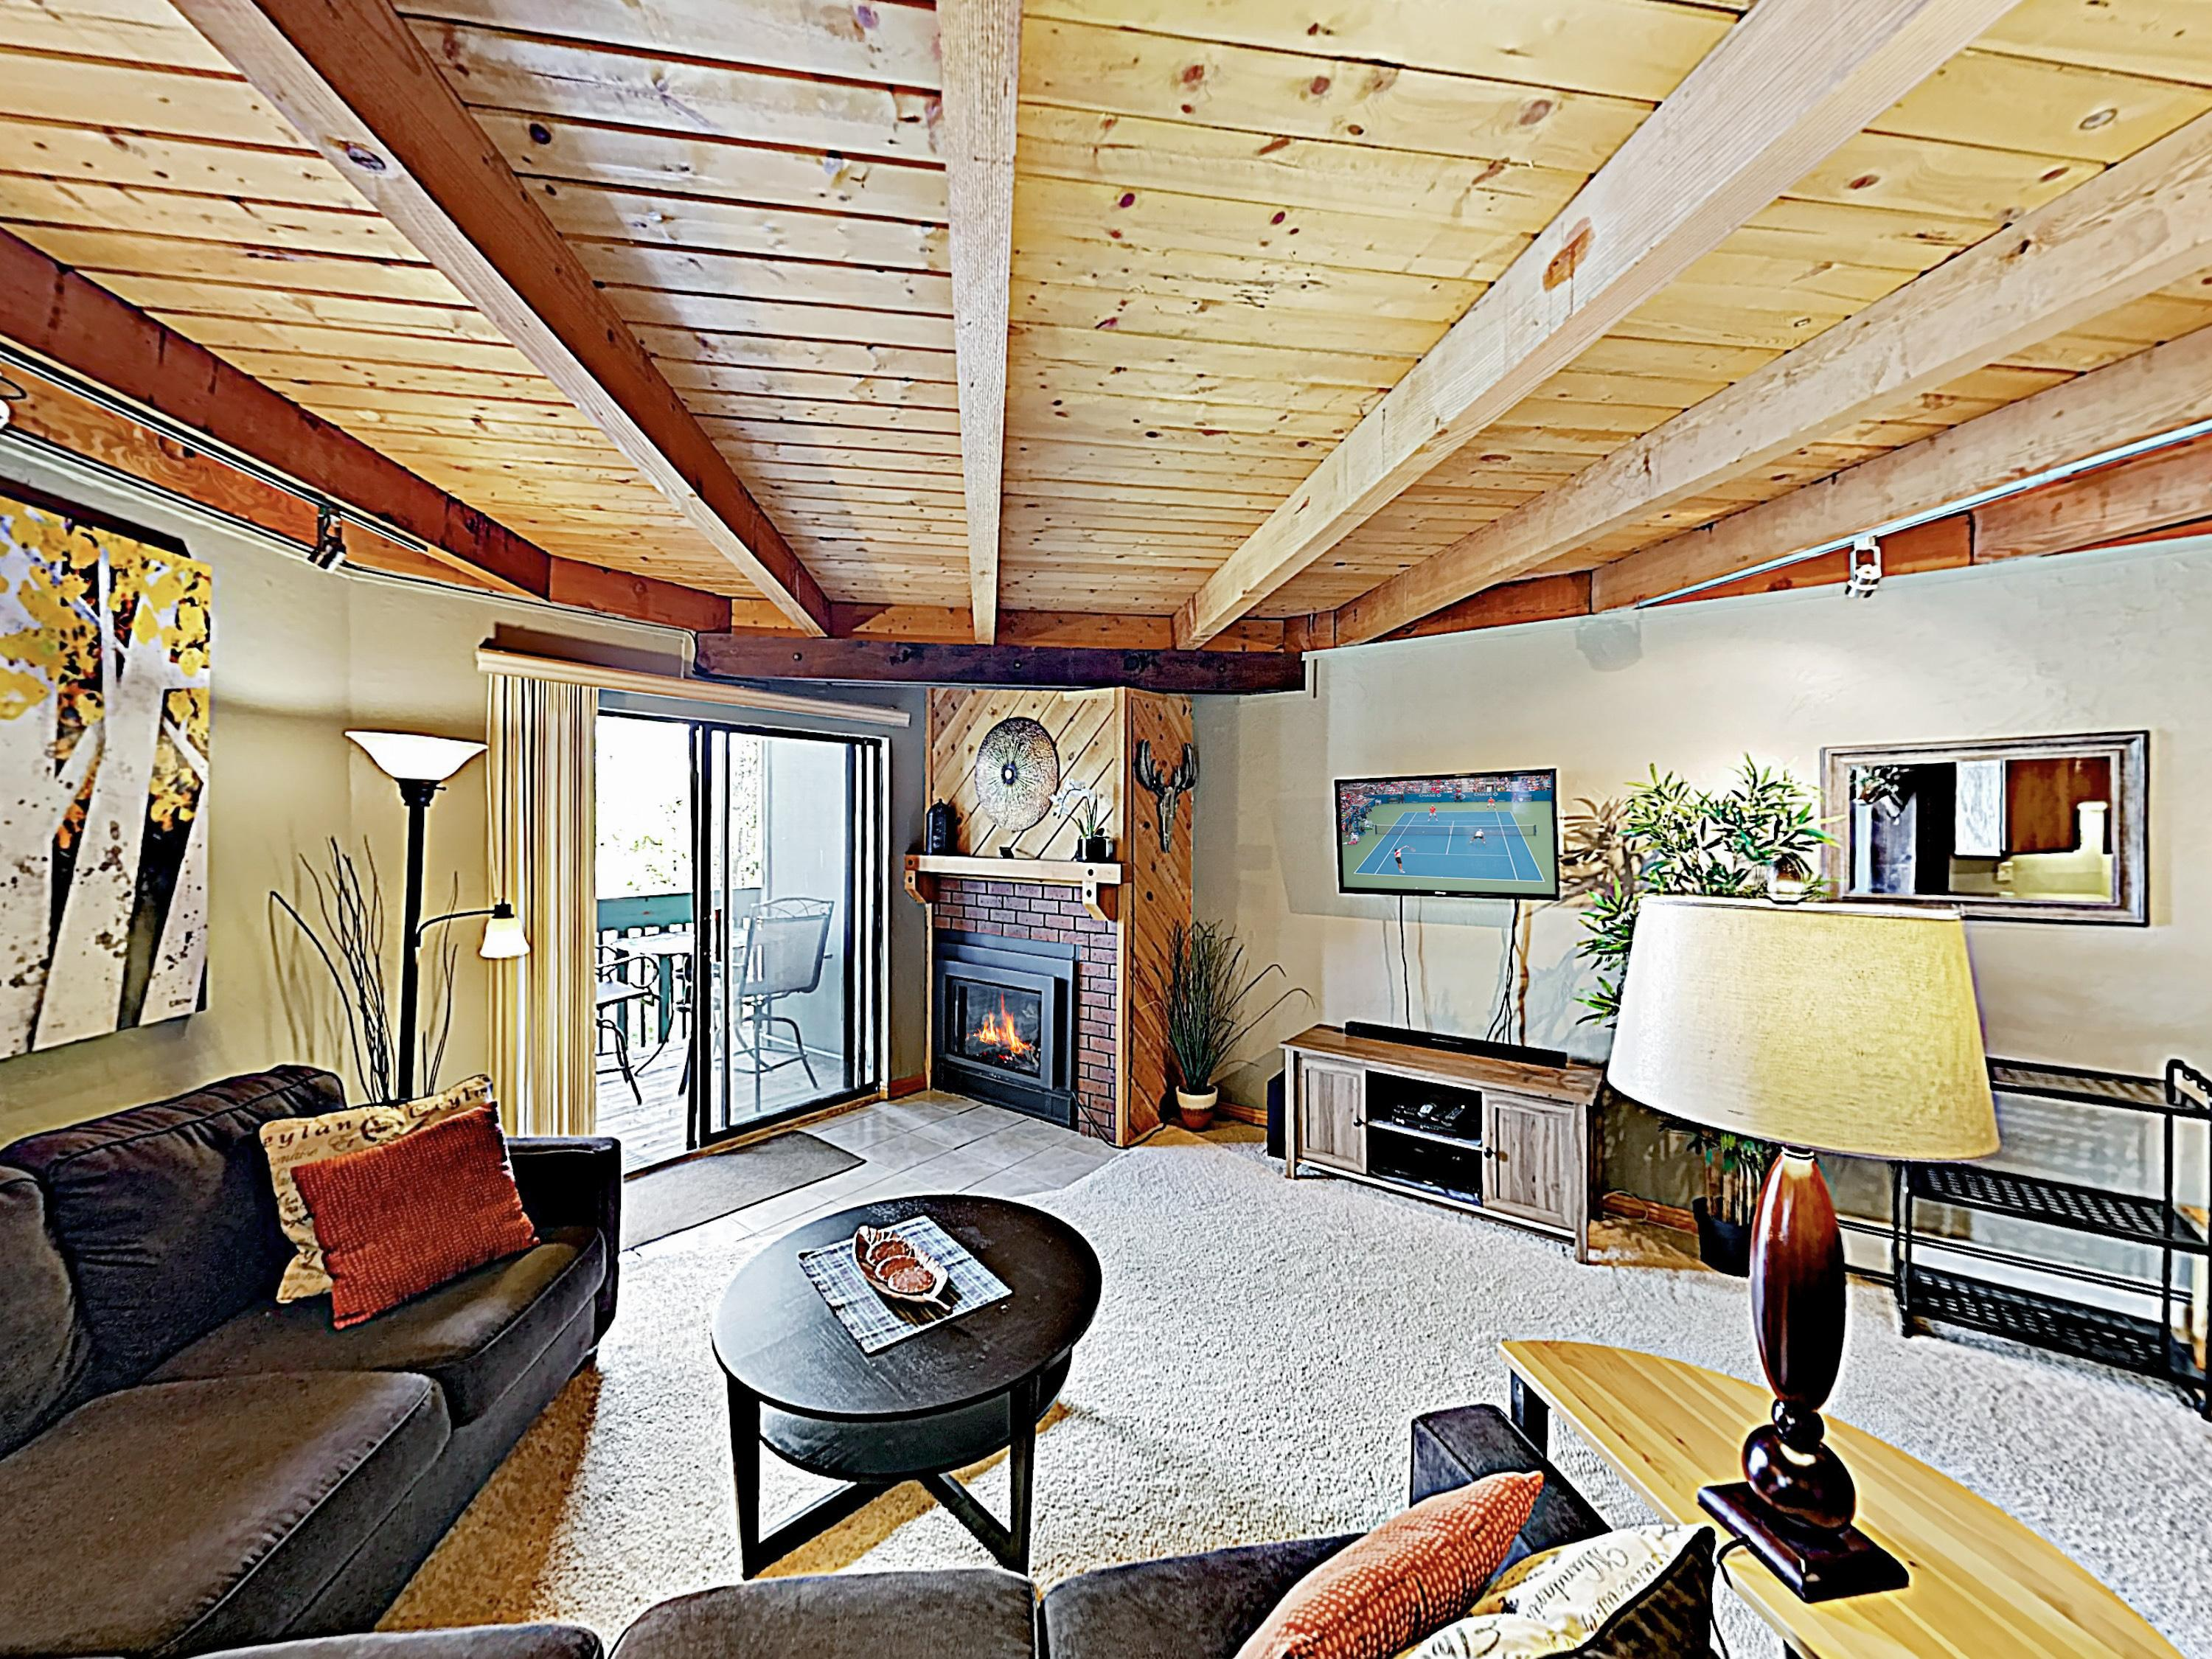 Welcome to Silverthorne! This condo is professionally managed by TurnKey Vacation Rentals